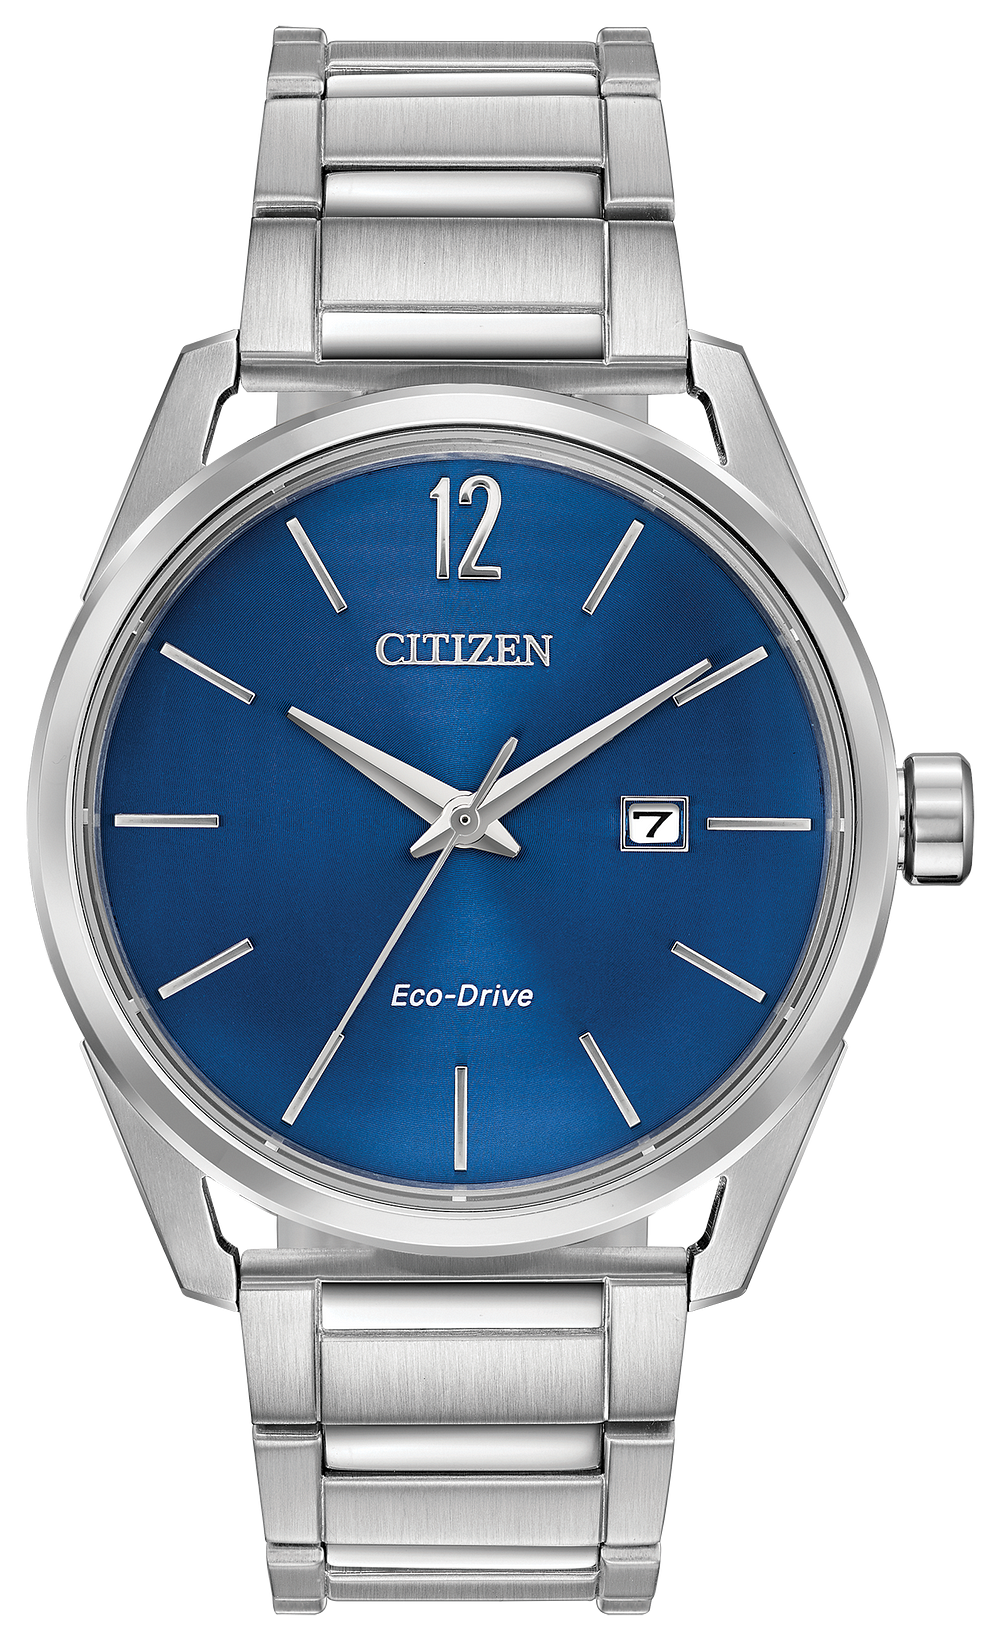 Citizen Eco Drive Watch Silver Tone Stainless Steel Band Blue Face With Day